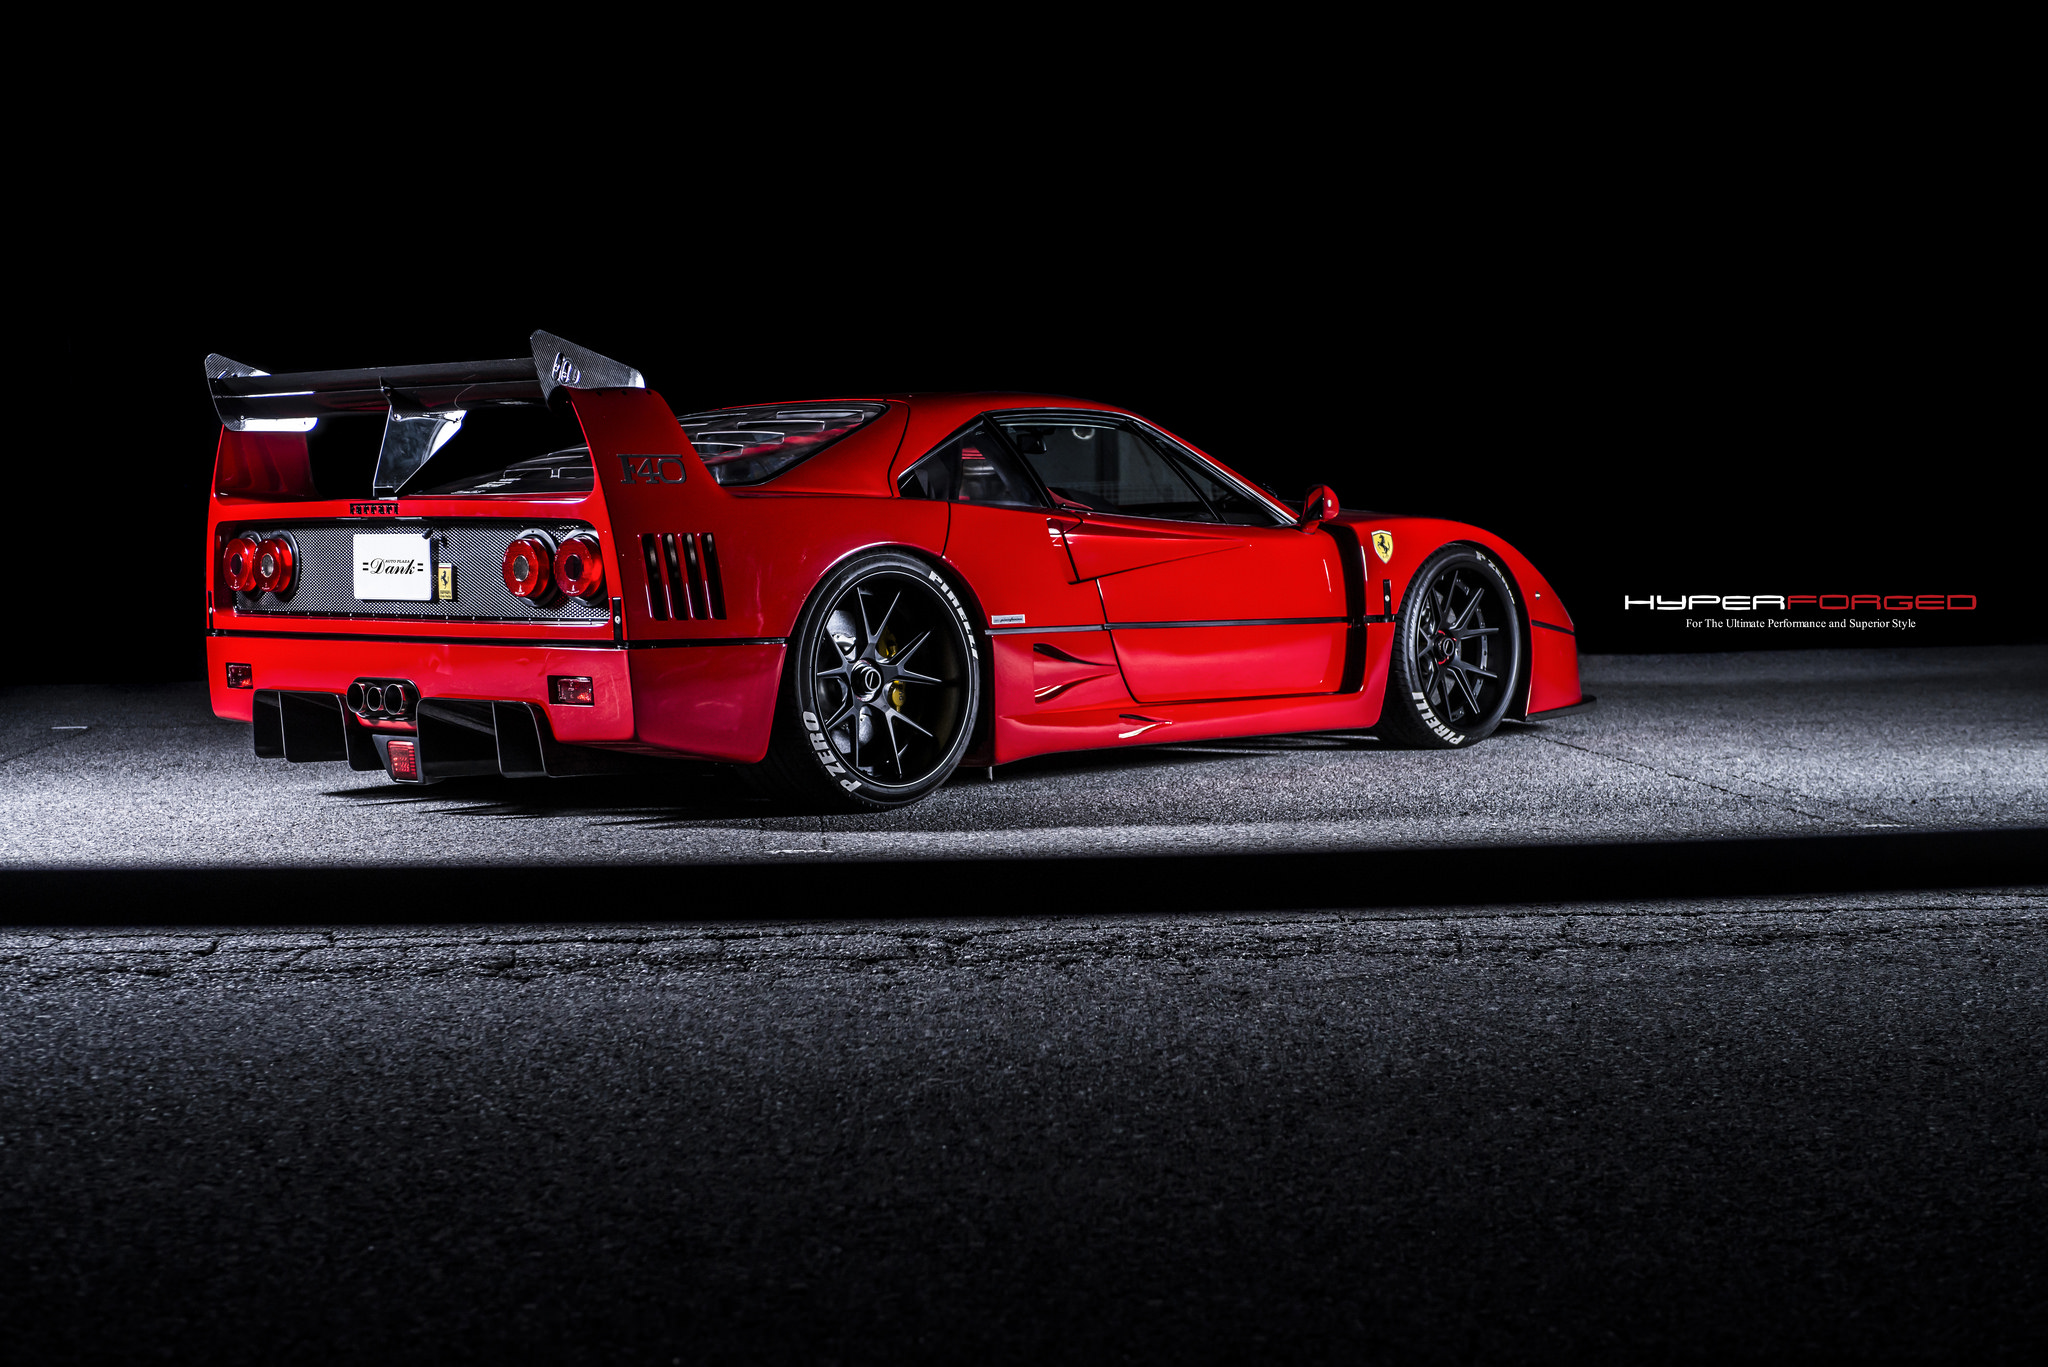 Ferrari F40 LM Hyper Forged Wheels